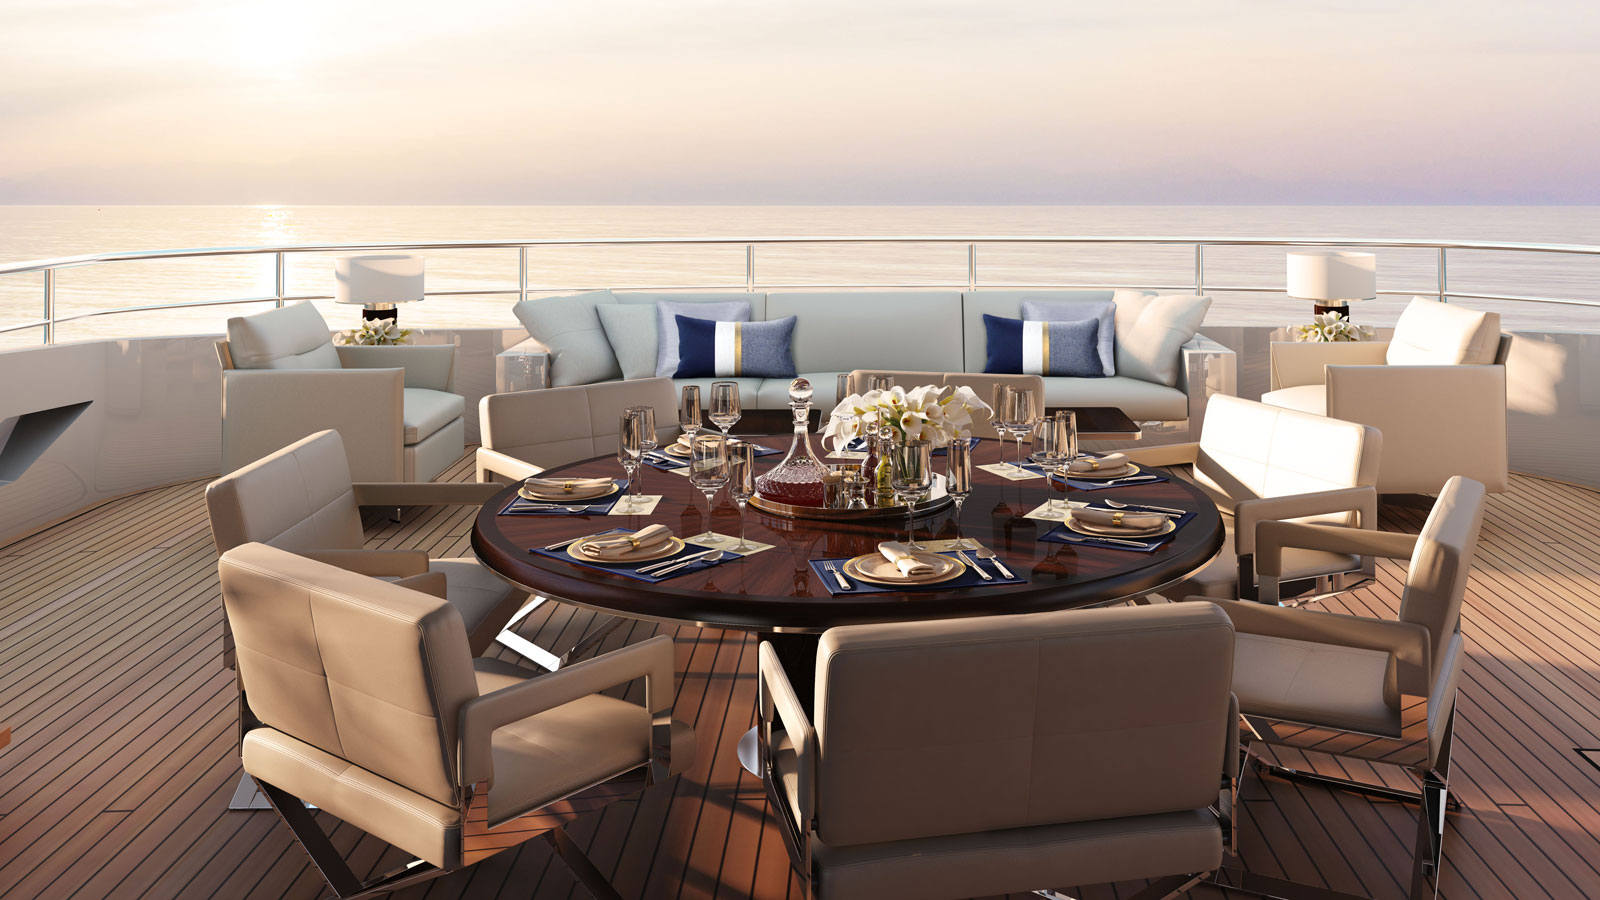 the-aft-deck-of-heesen-super-yacht-project-cayman